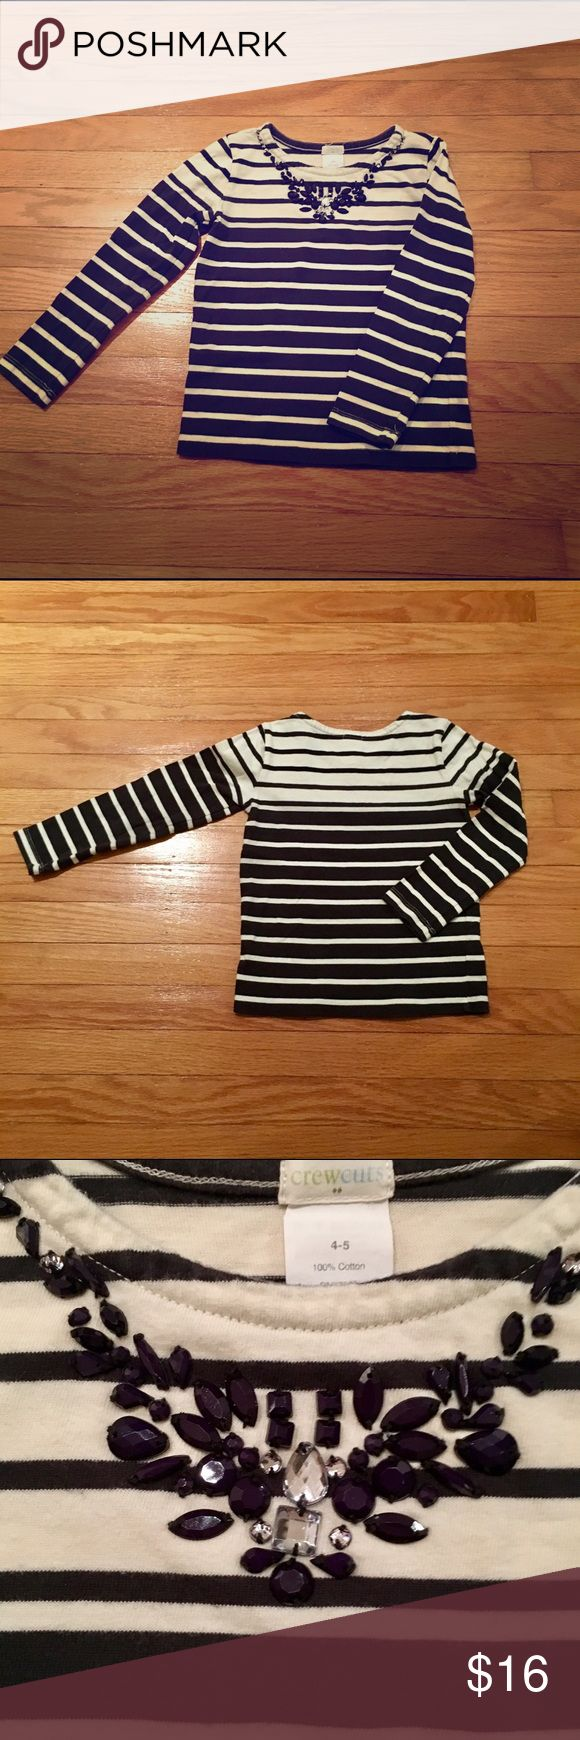 "Crew Cuts knit pull over w jewel neckline She will feel like such a little lady in this casual yet ""fancy"" navy/off white striped pullover with jeweled neckline! (Top is 100% cotton but thicker then your average t-shirt). Great condition - worn twice J. Crew Shirts & Tops Tees - Long Sleeve"